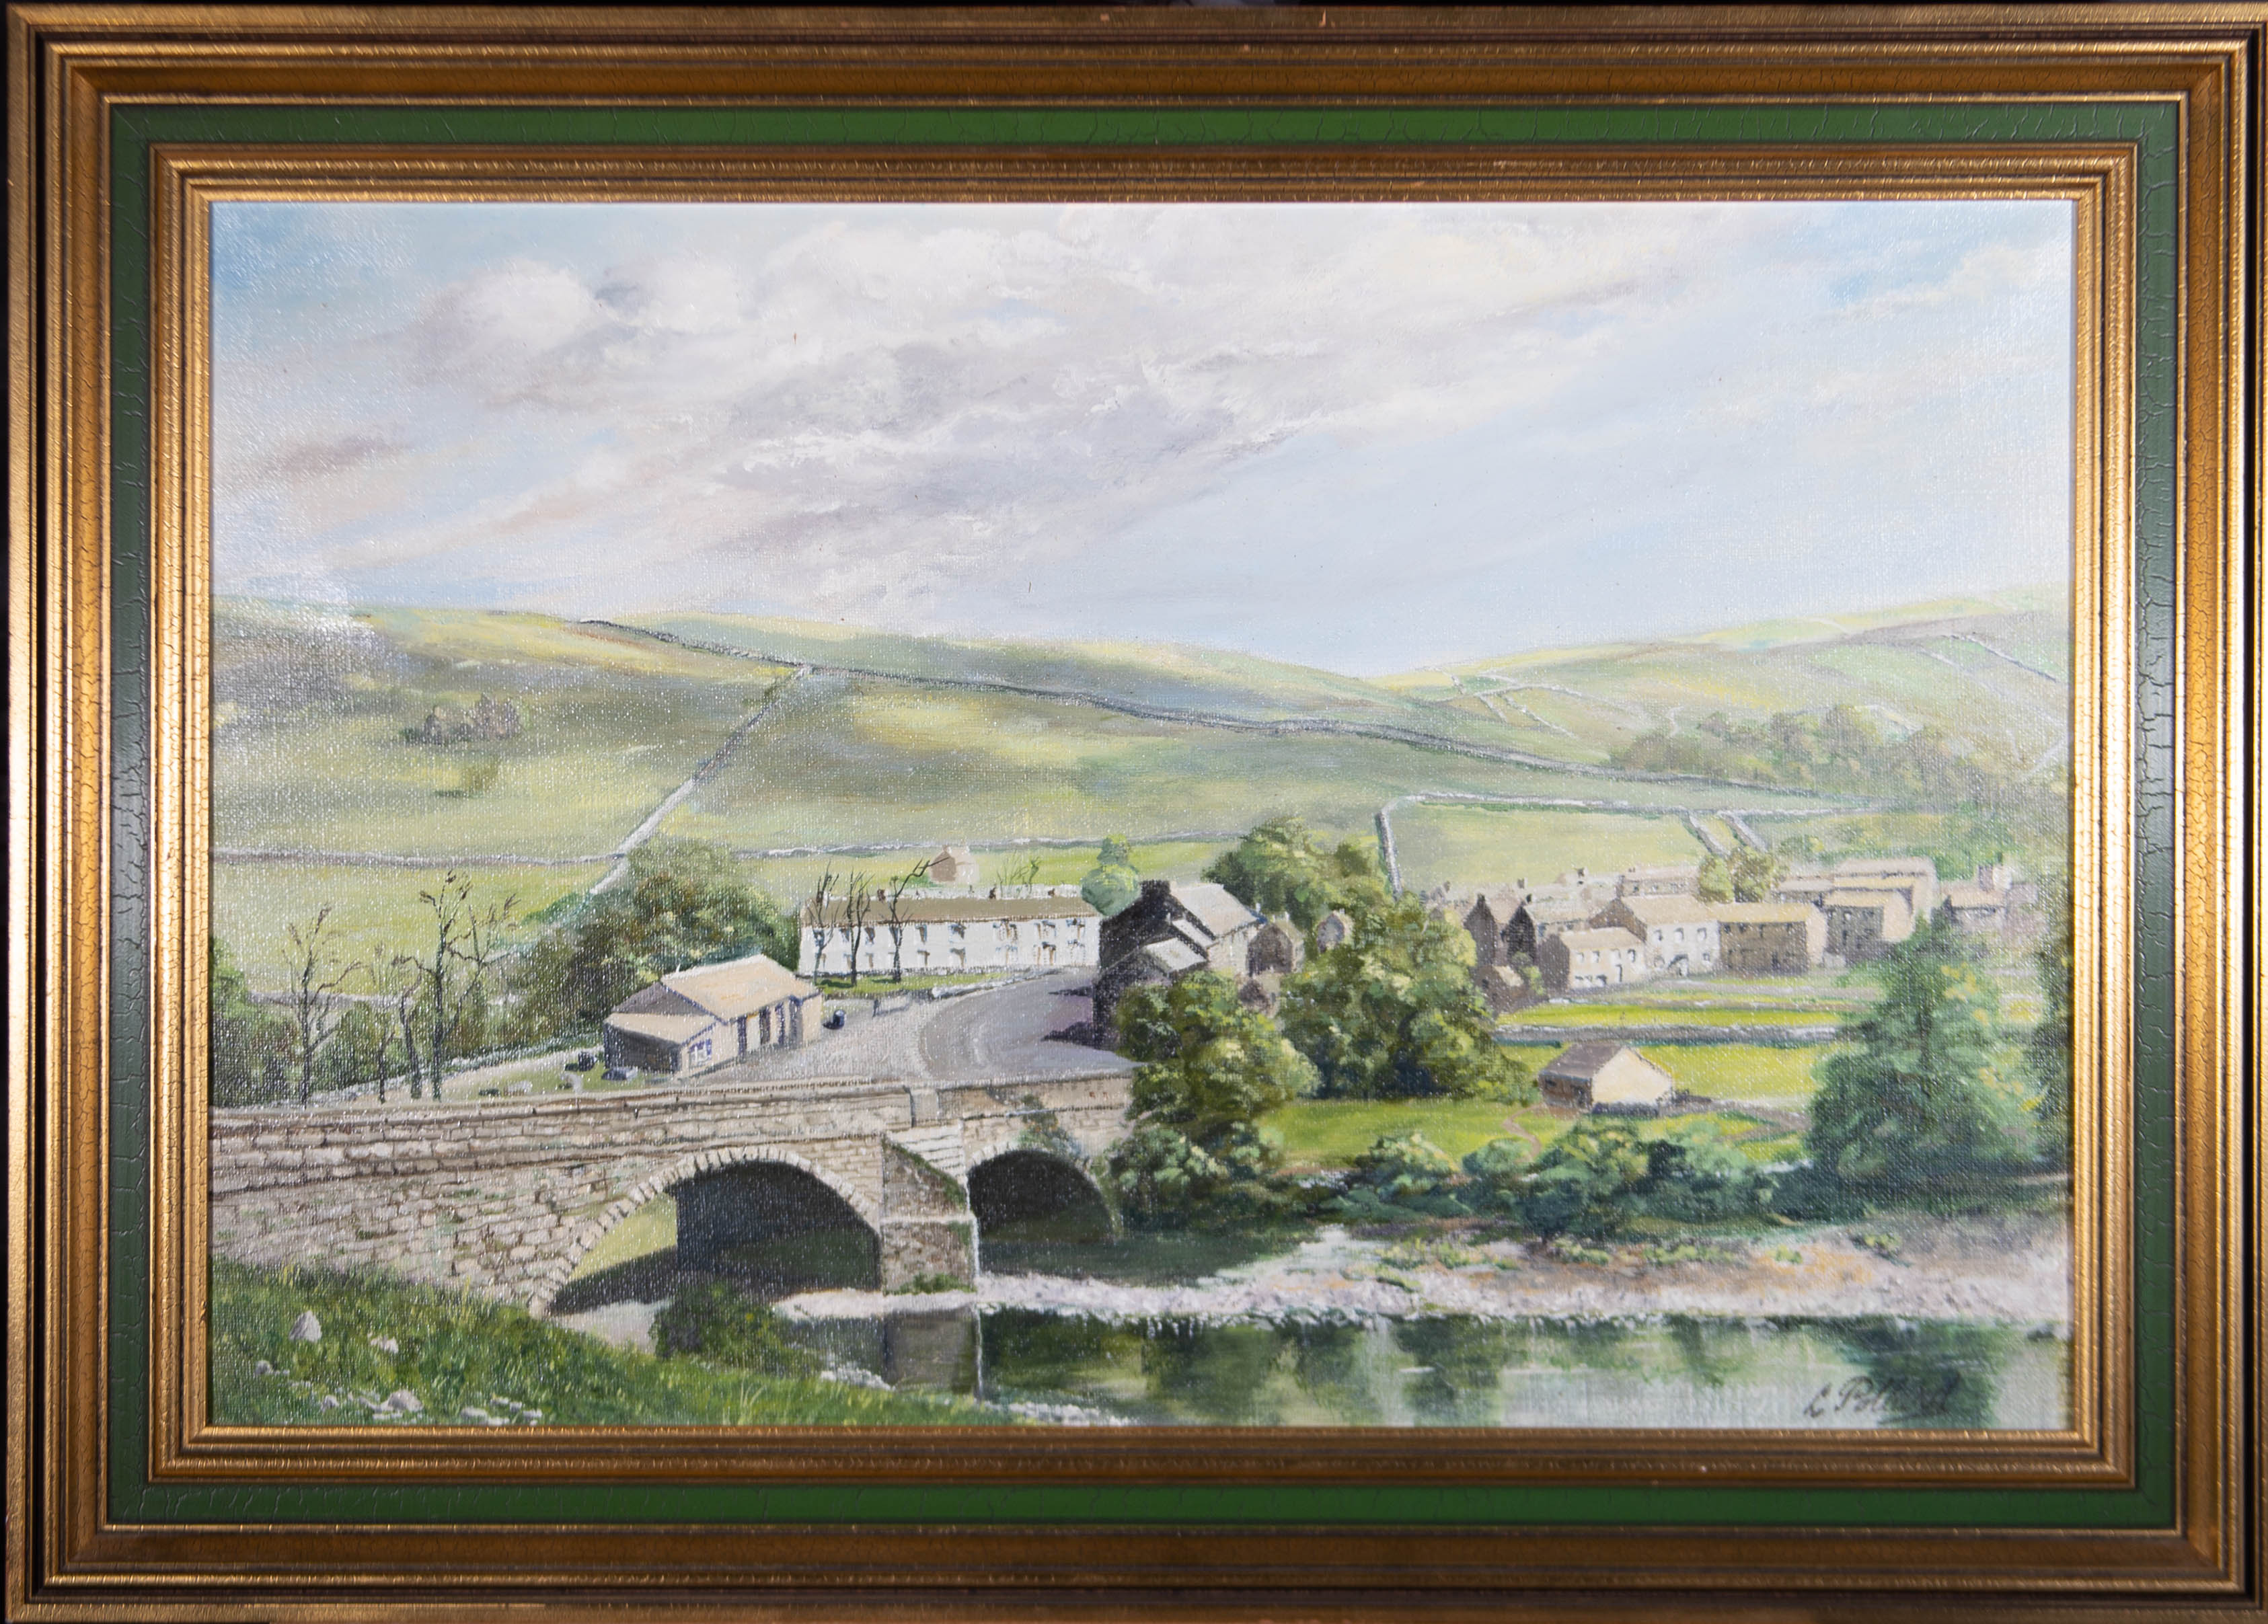 L. Pollard - Large Mid 20th Century Oil, View of Kettlewell, North Yorkshire